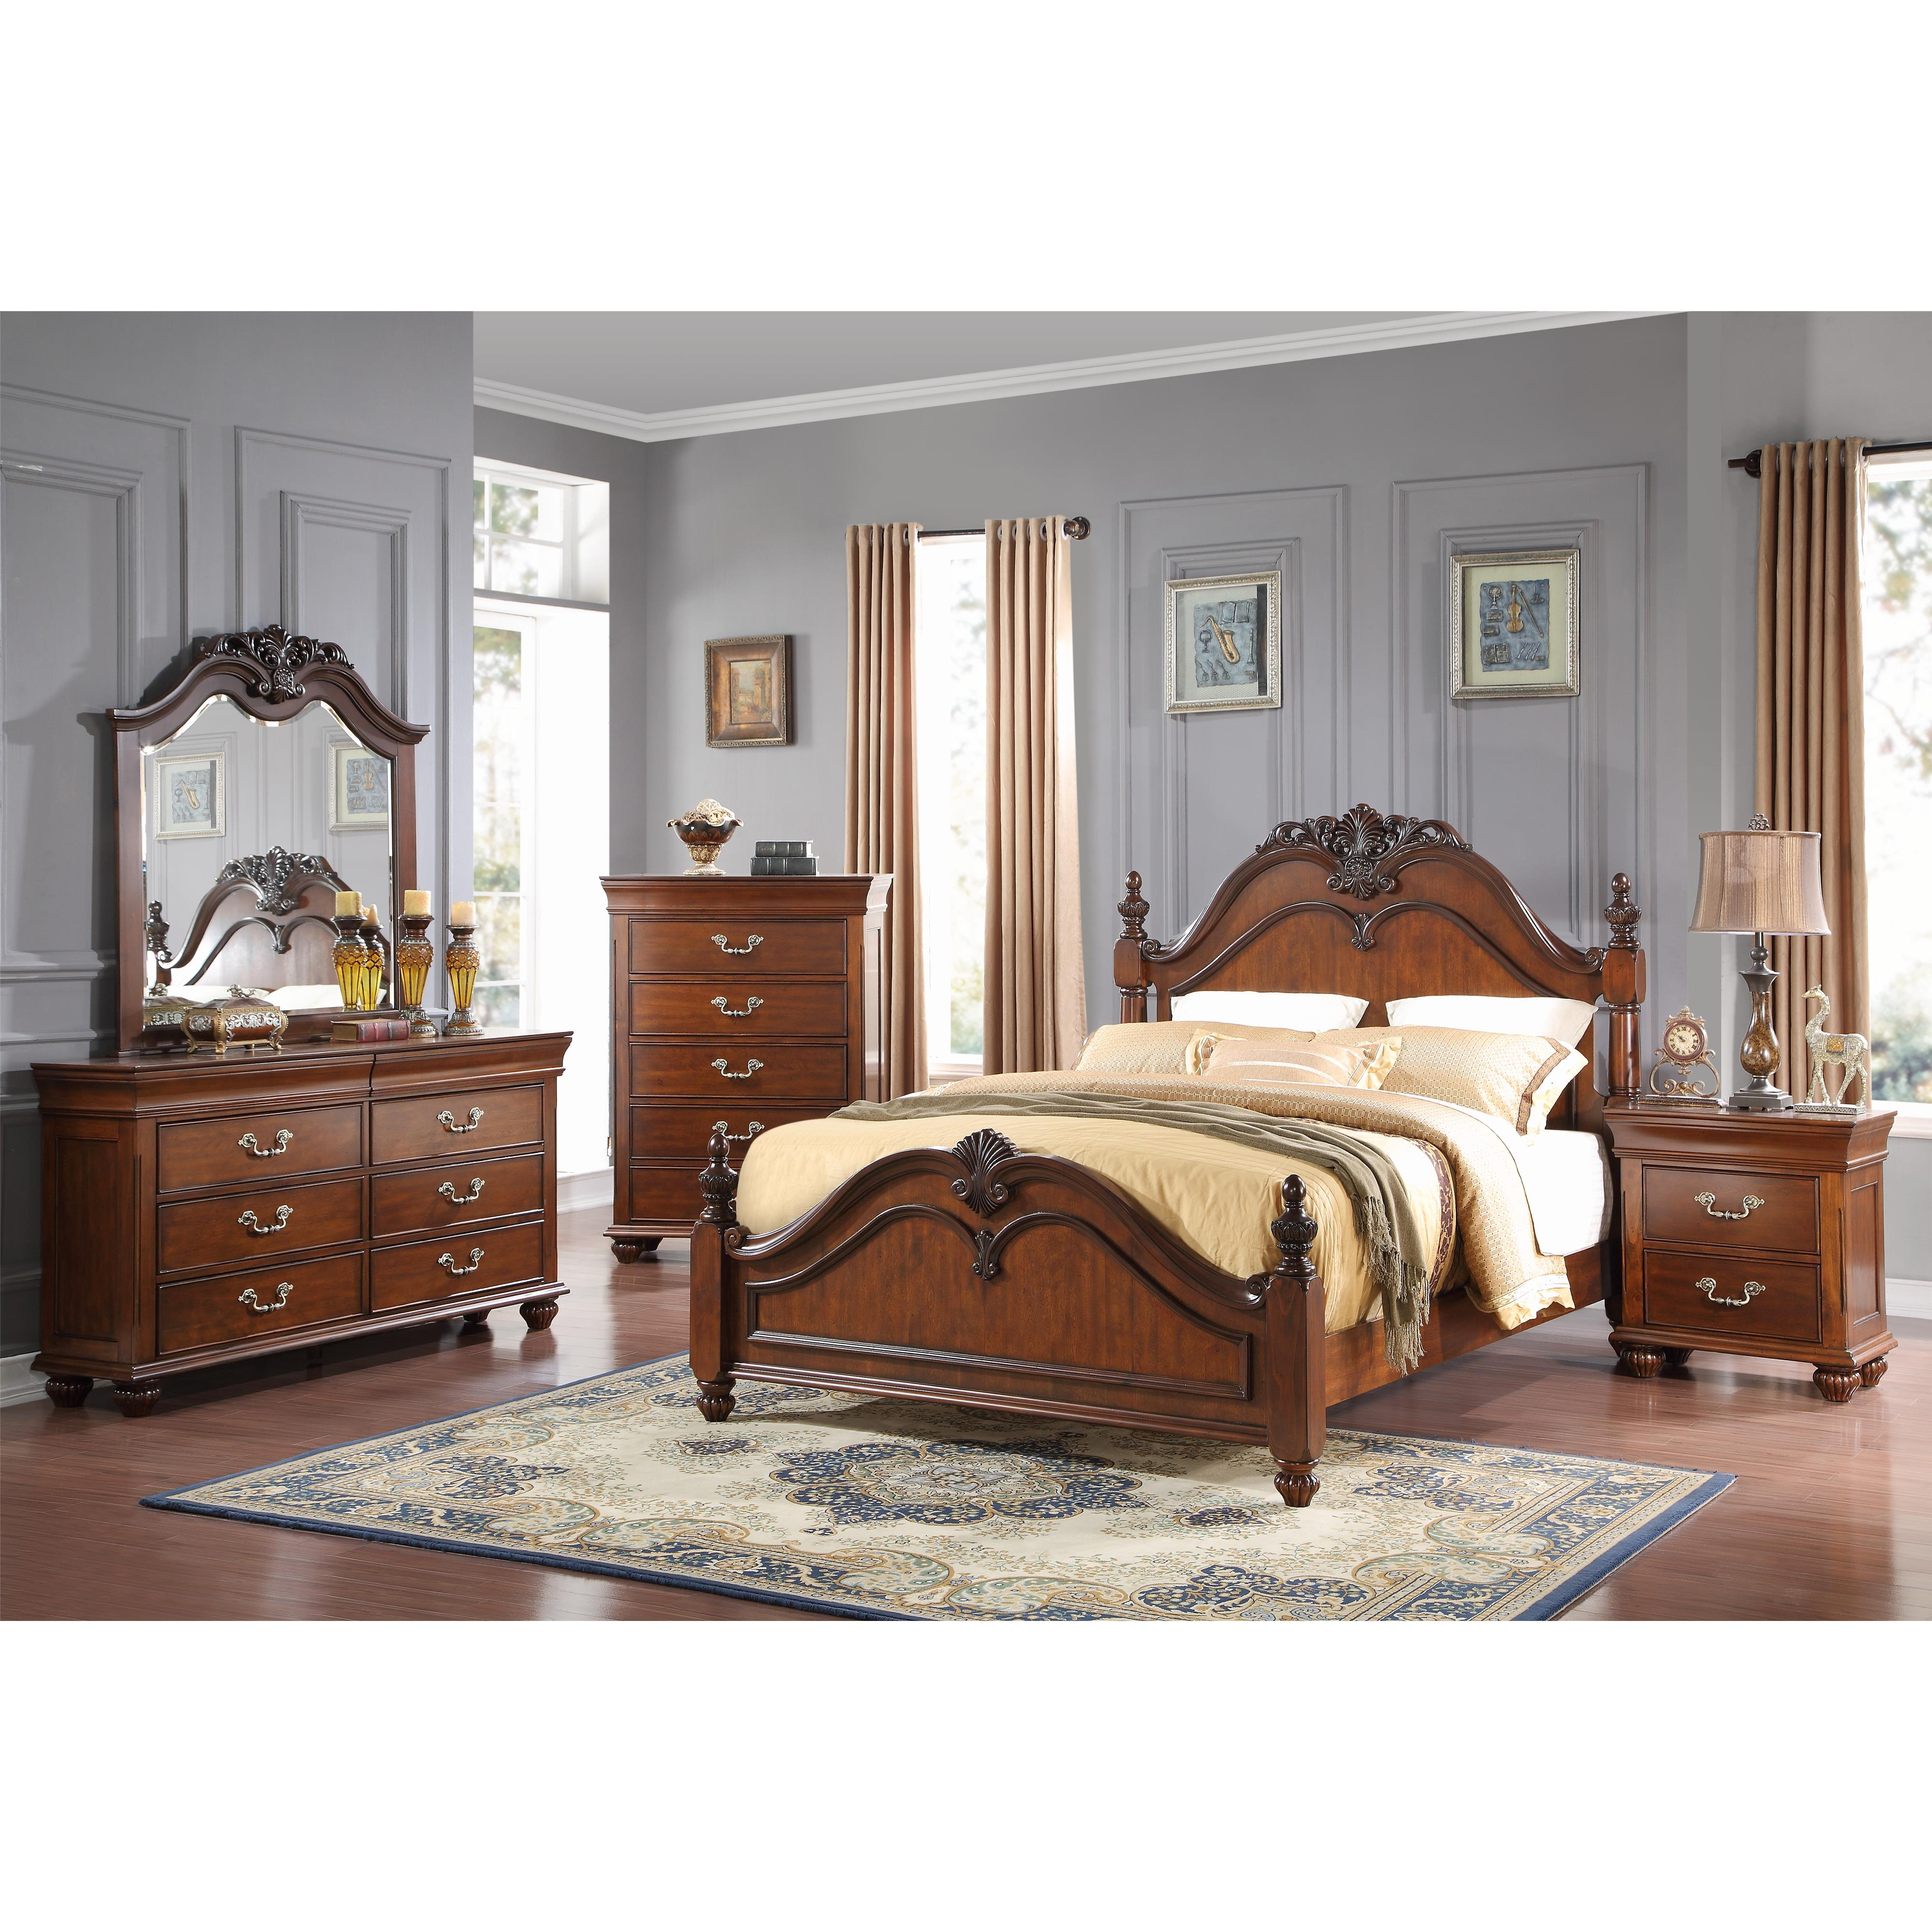 New Classic Jaquelyn Queen Bedroom Group - Item Number: 8651 Q Bedroom Group